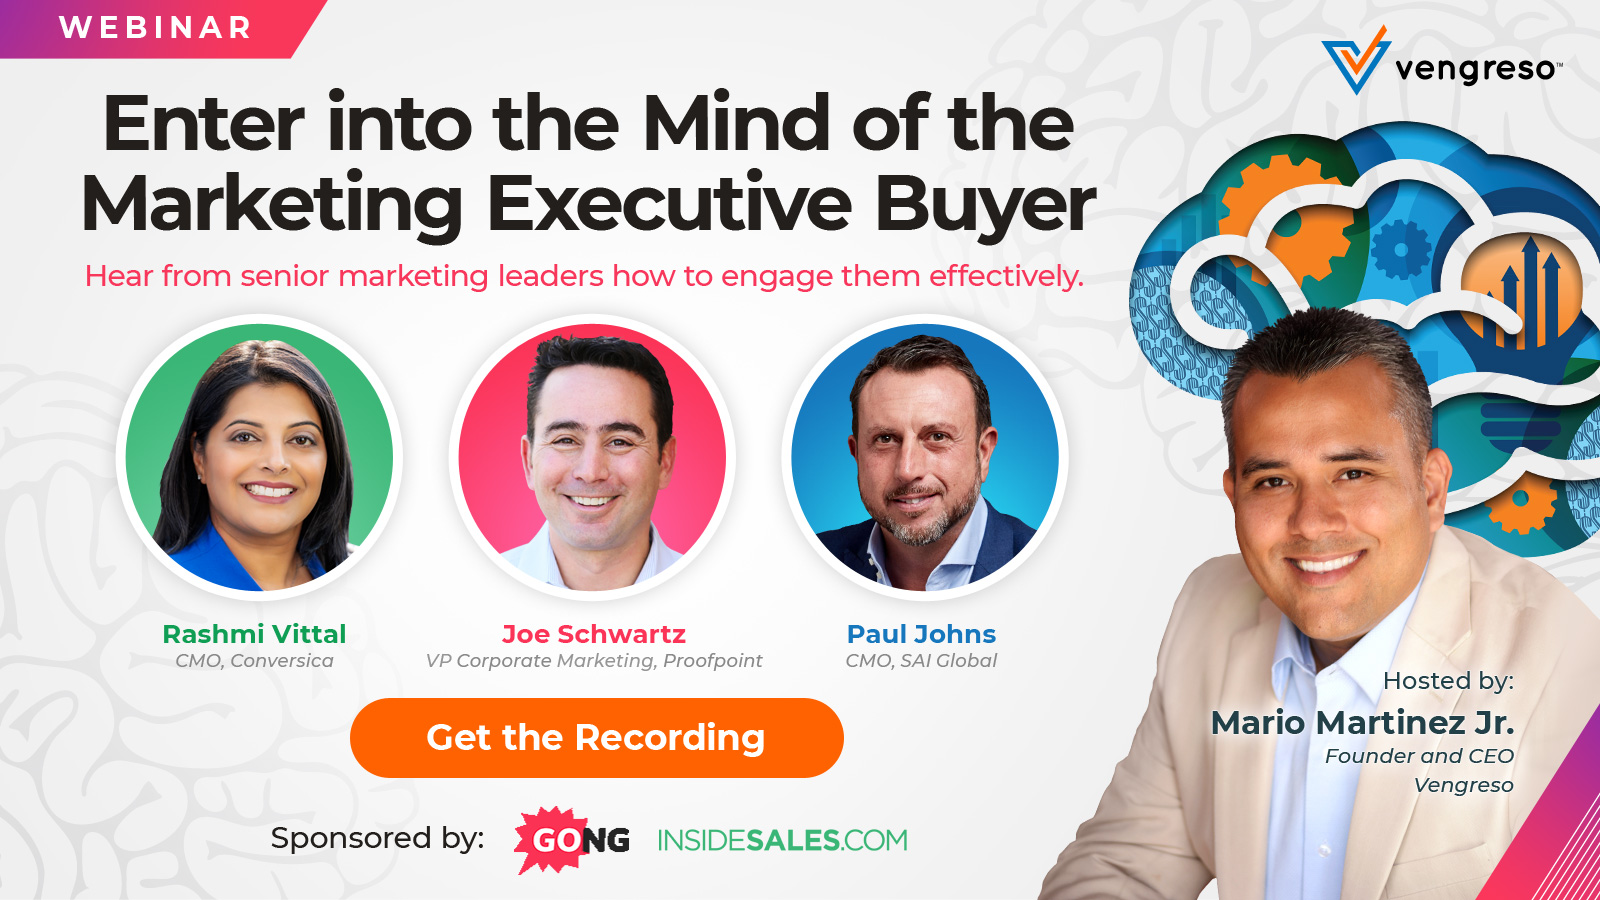 Enter-into-the-Mind-of-the-Executive-Marketing-Buyer-1600x900-4-recording